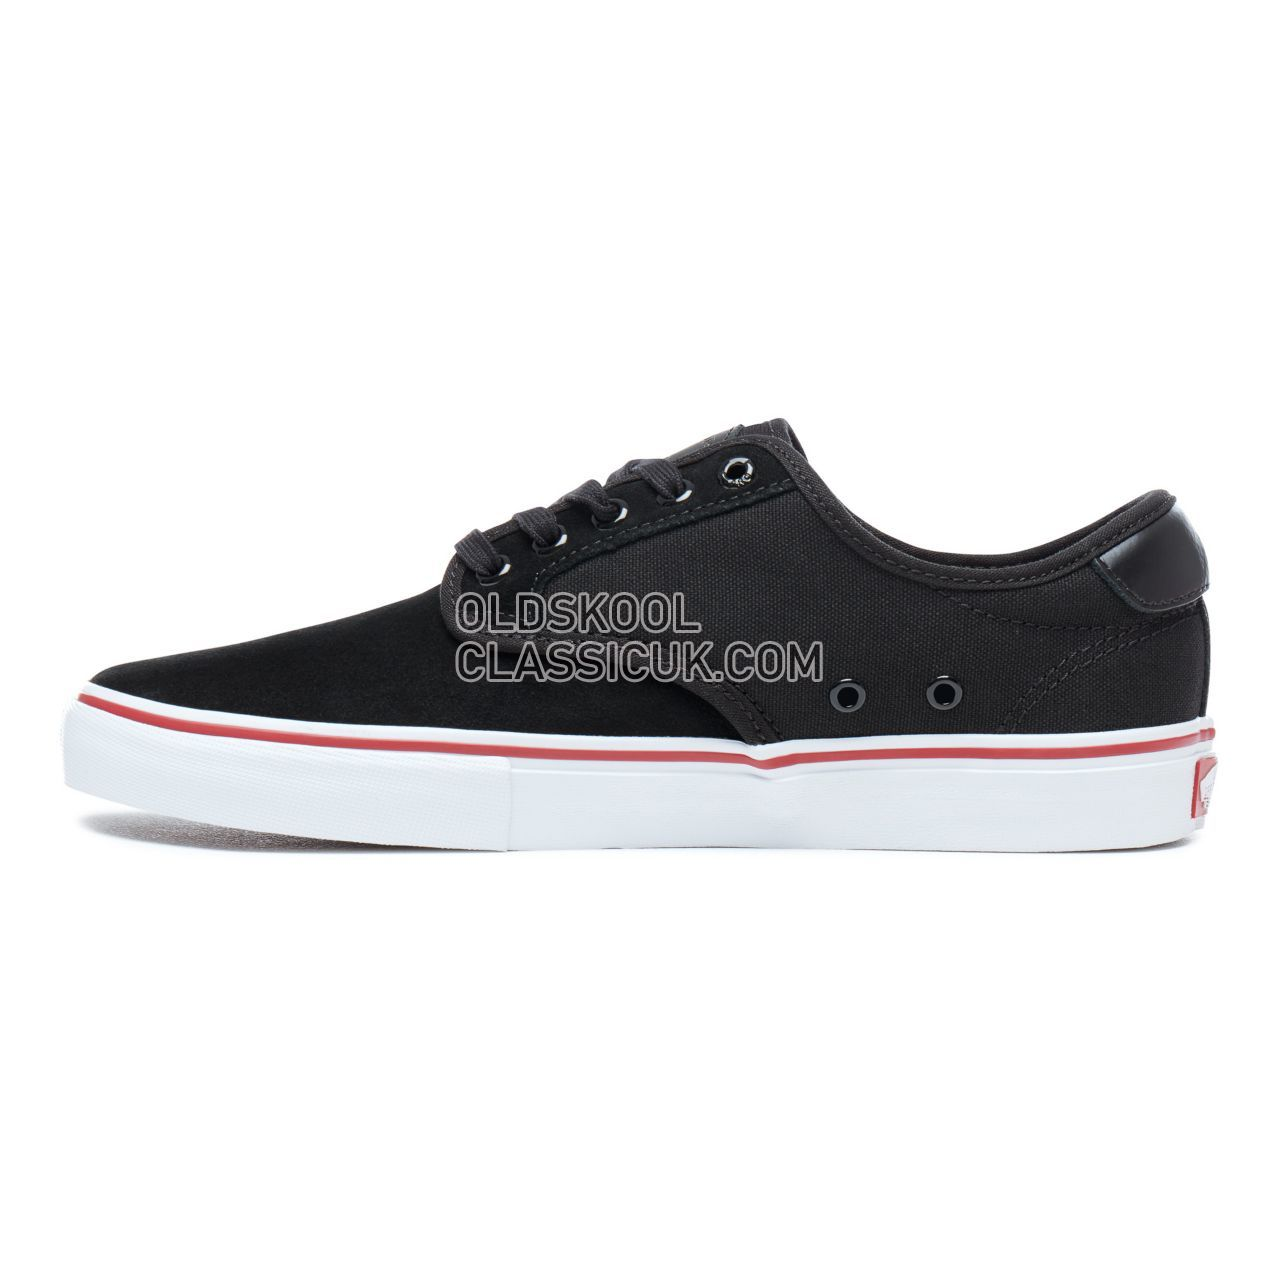 819fda37752 ... Vans Chima Ferguson Pro Sneakers Mens Black-White-Chili Pepper  VA38CFB48 Shoes ...